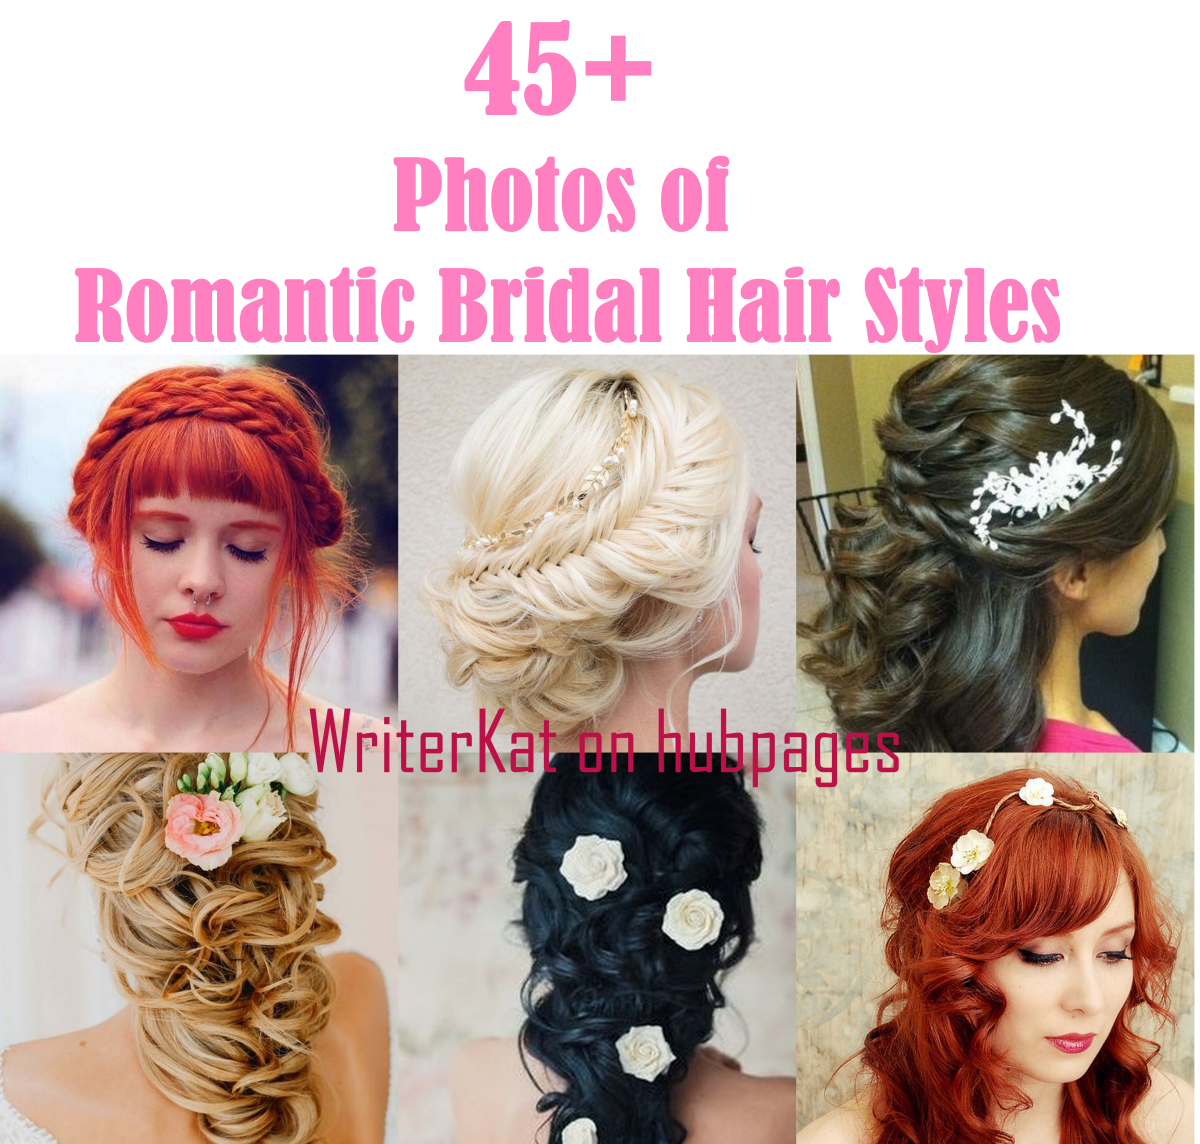 45 + photos of Romantic bridal hair styles